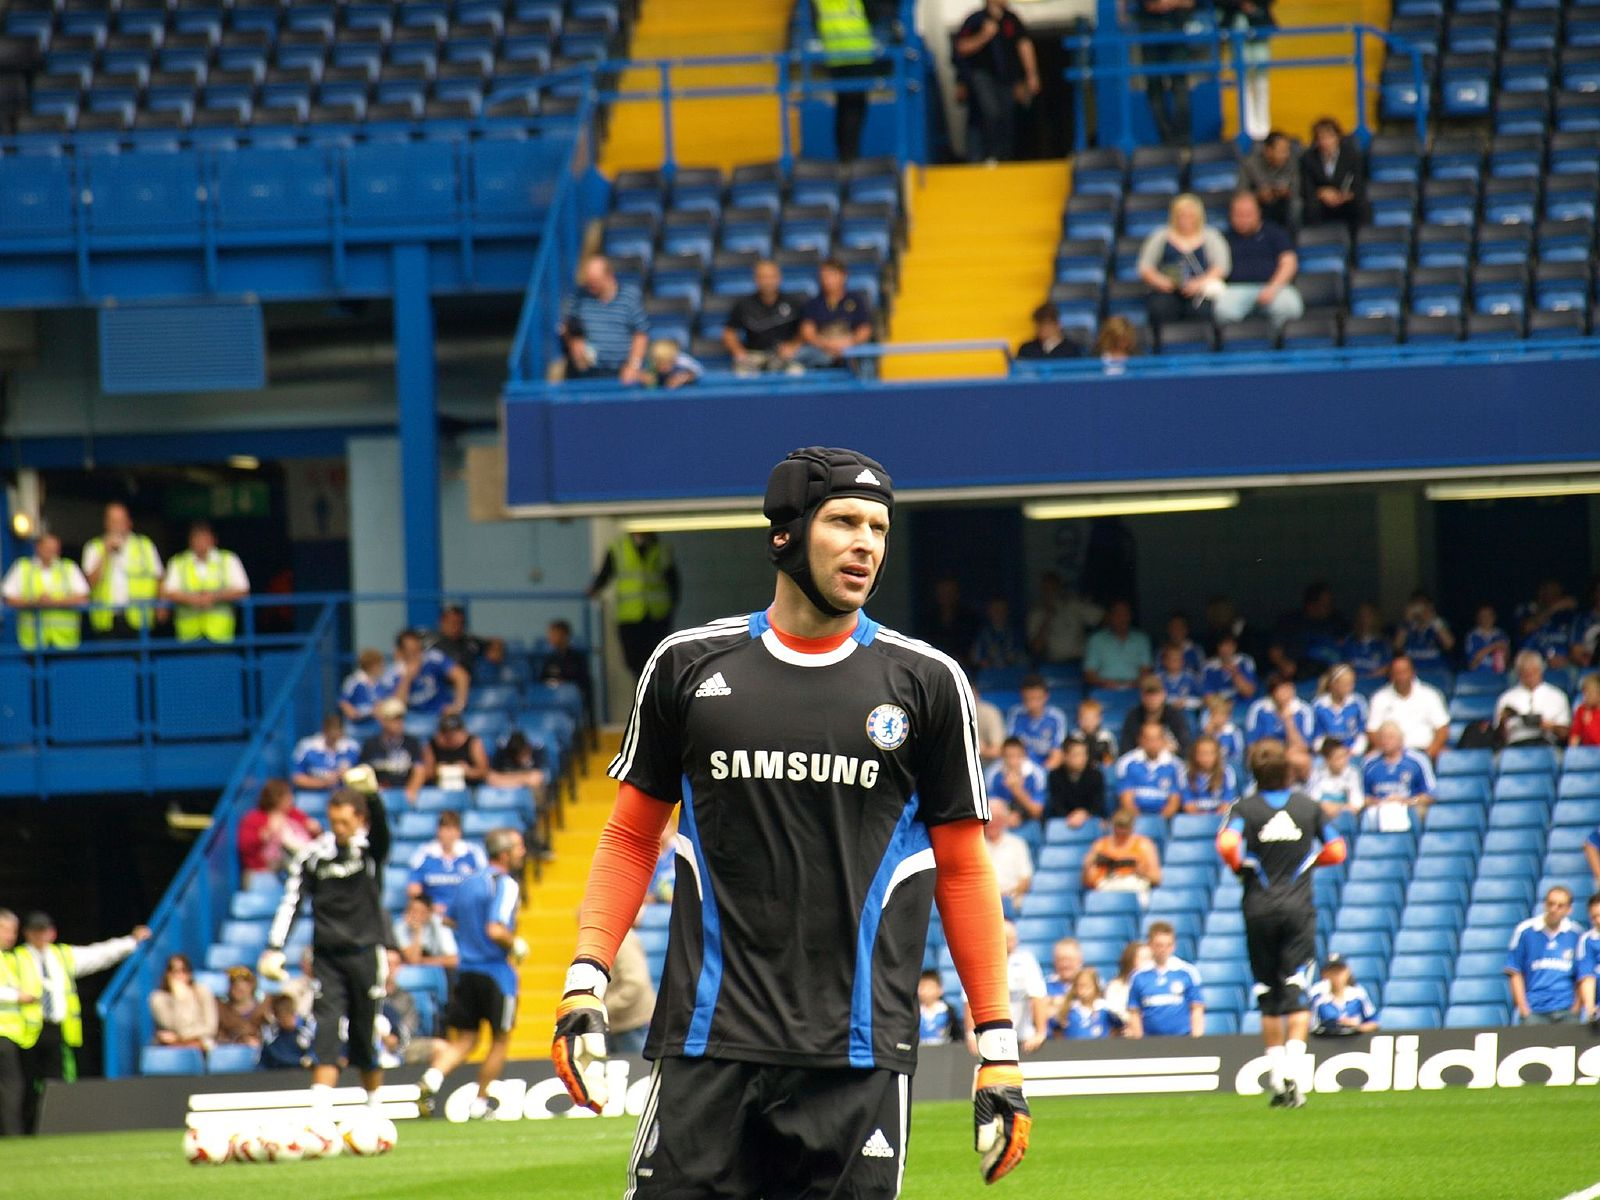 ee8aea119 Why Recapturing Petr Cech Would Be a Great Move By Chelsea - Chelsea ...